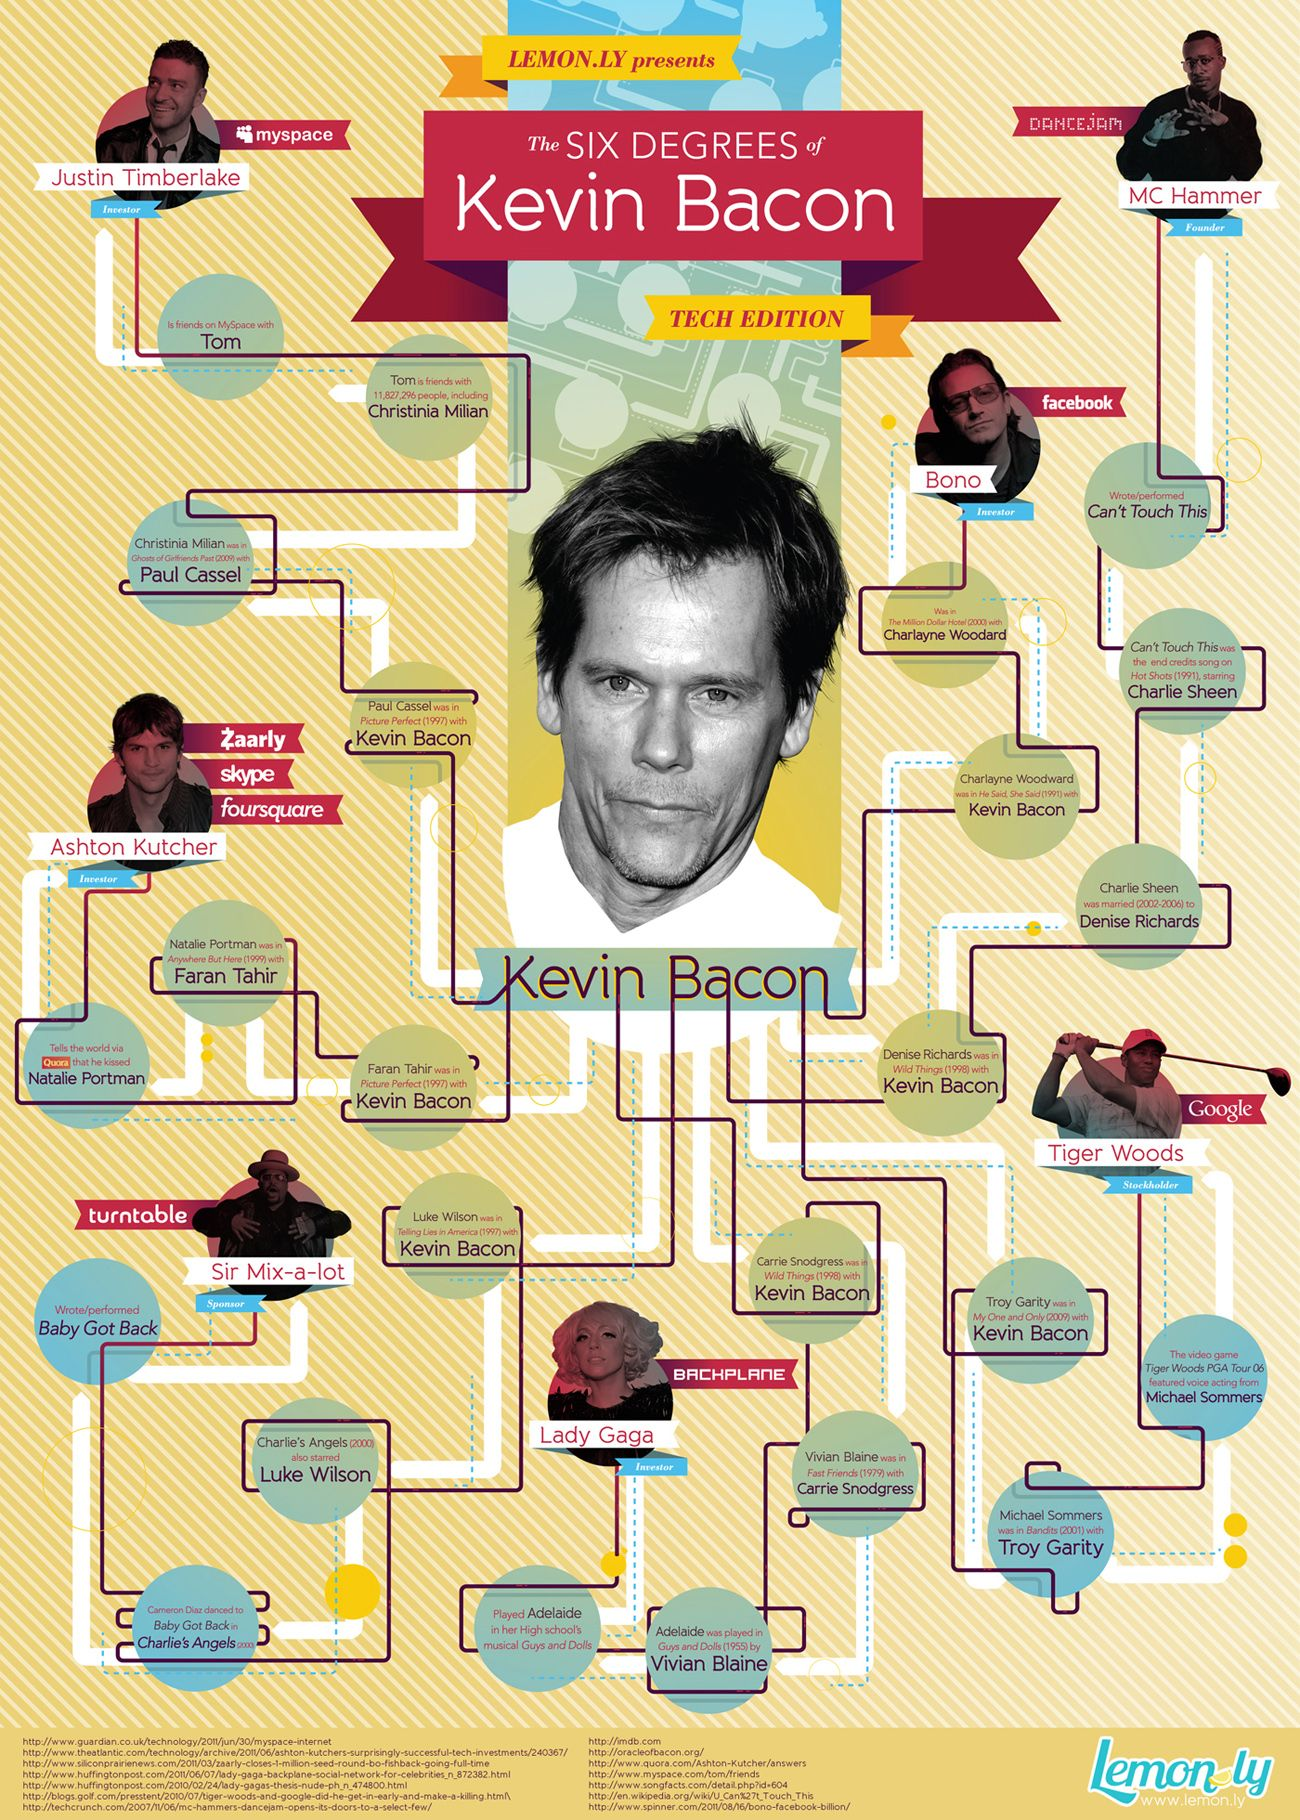 This Is An Infographic Is An Example Of A Flow Chart Involving Kevin Bacon The Actor While This Particular Version Is A Tech Edition The Charts Usually